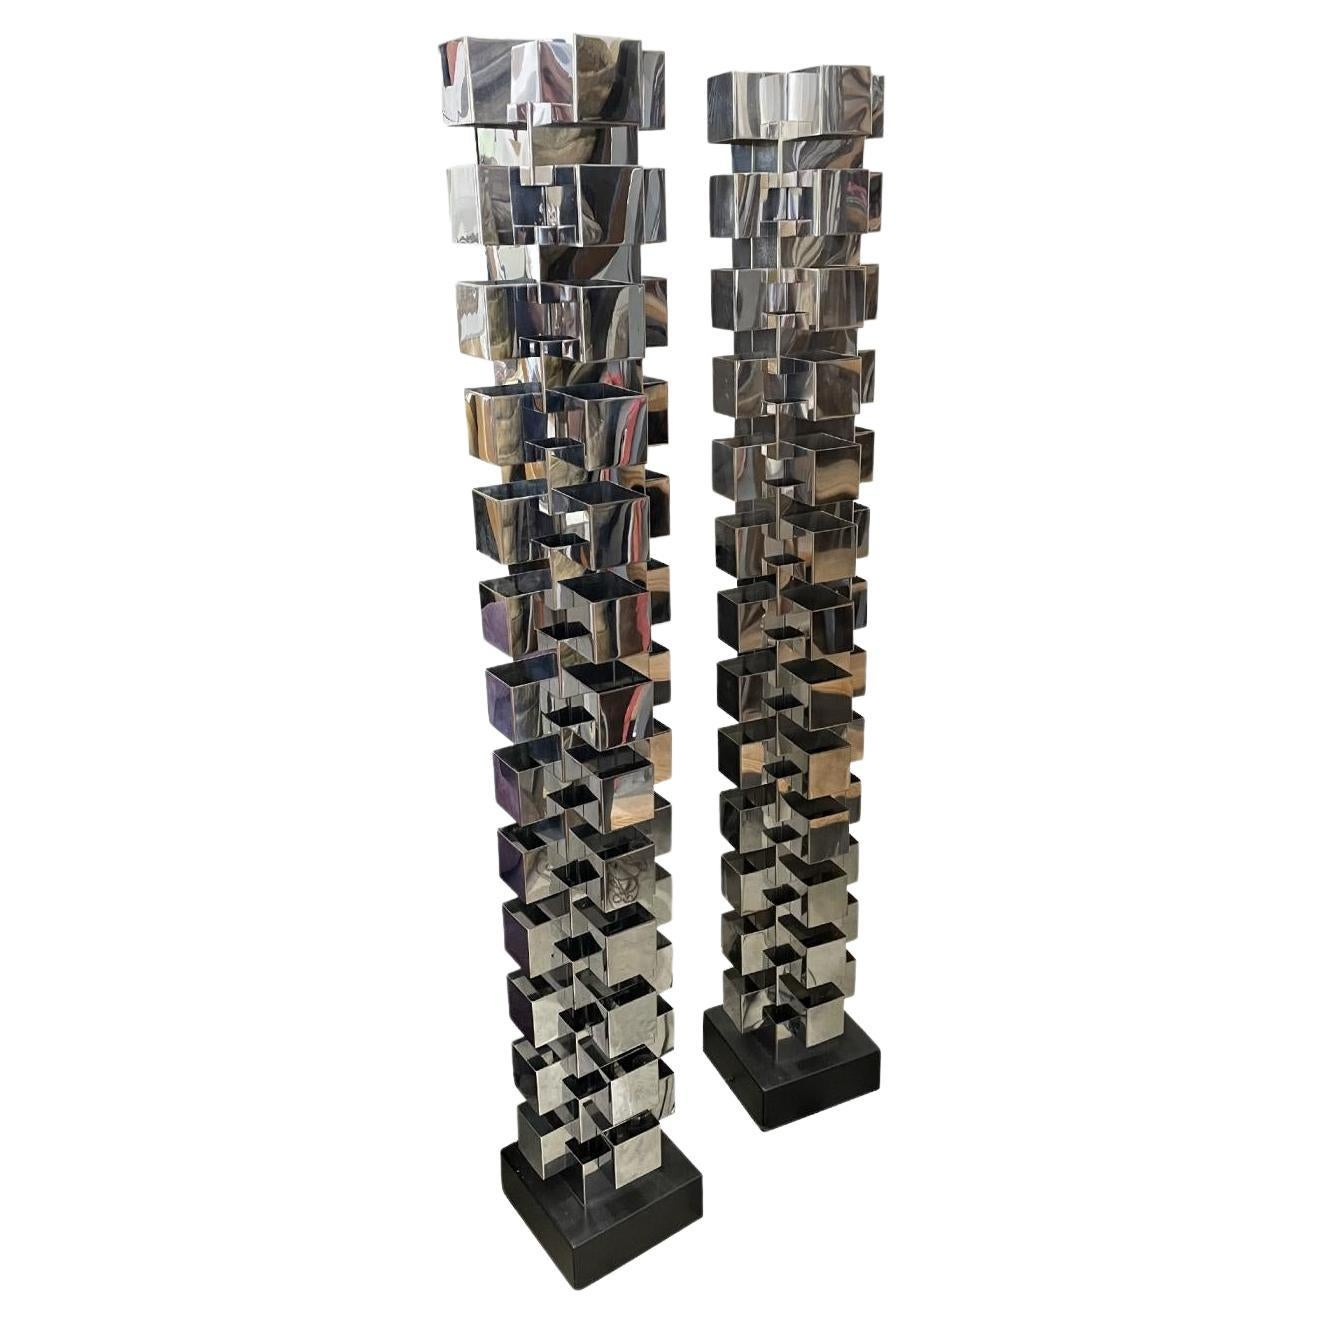 Curtis Jere Tower Floor Lamps